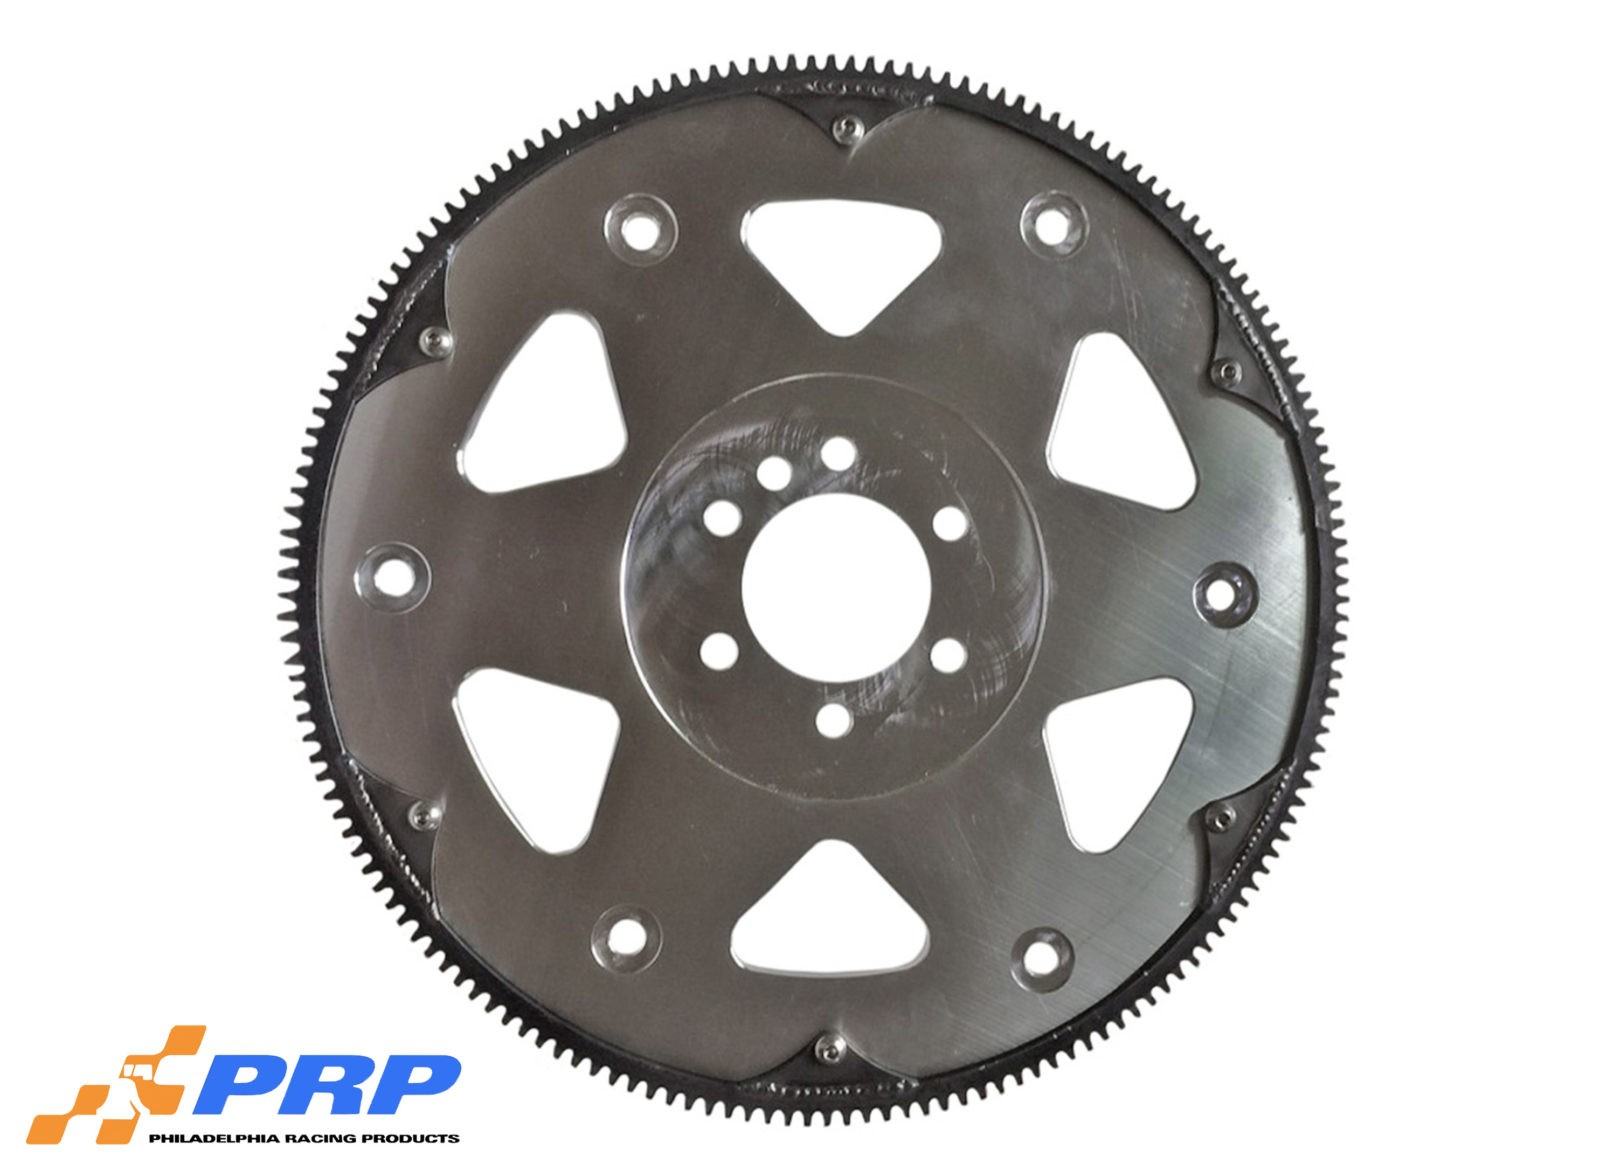 168 Flexplate made by PRP Racing Products